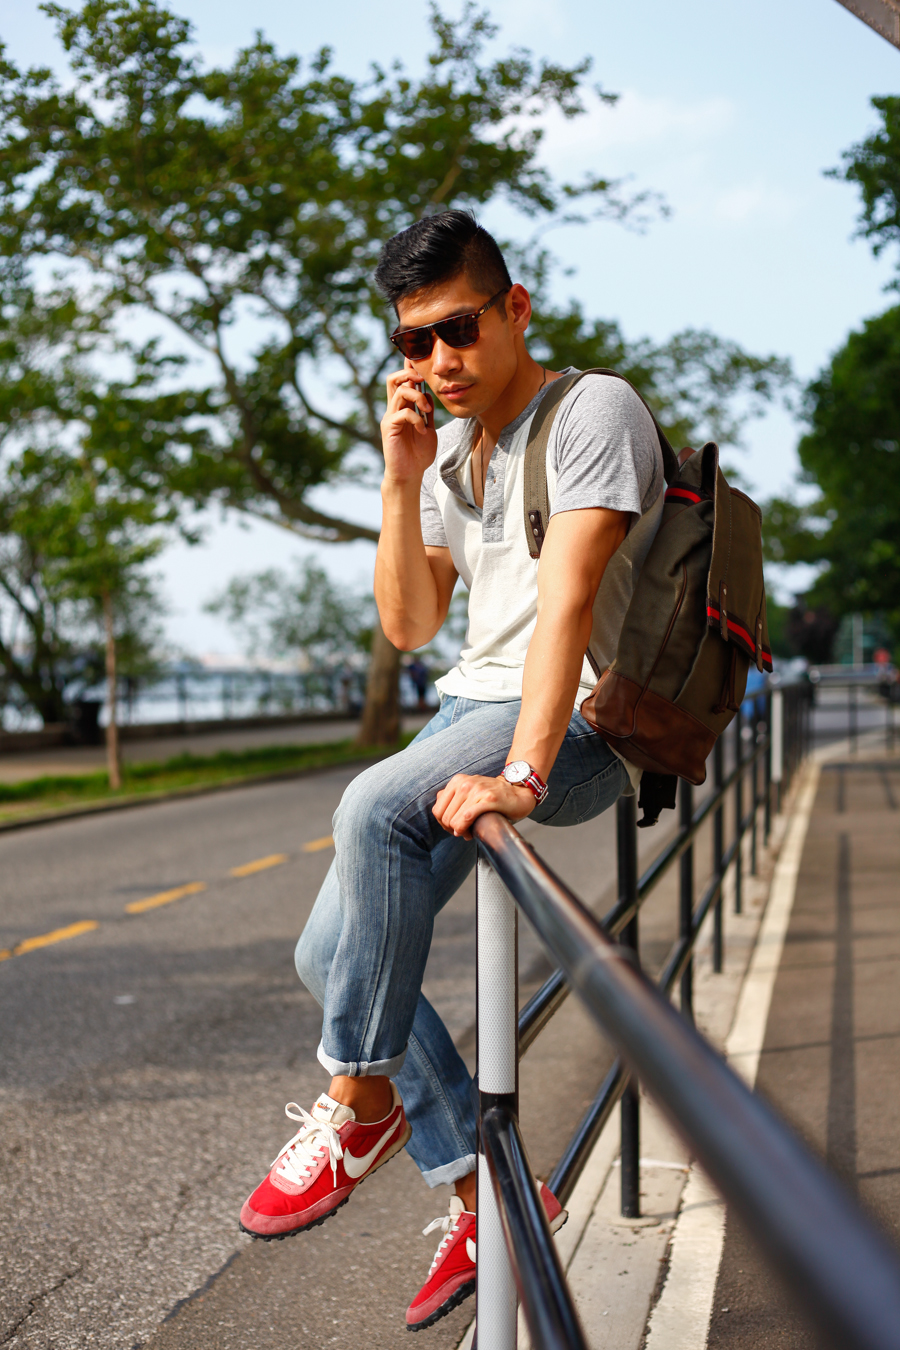 Levitate Style x JcPenney Collaboration | Summer Style Looks with Levi's